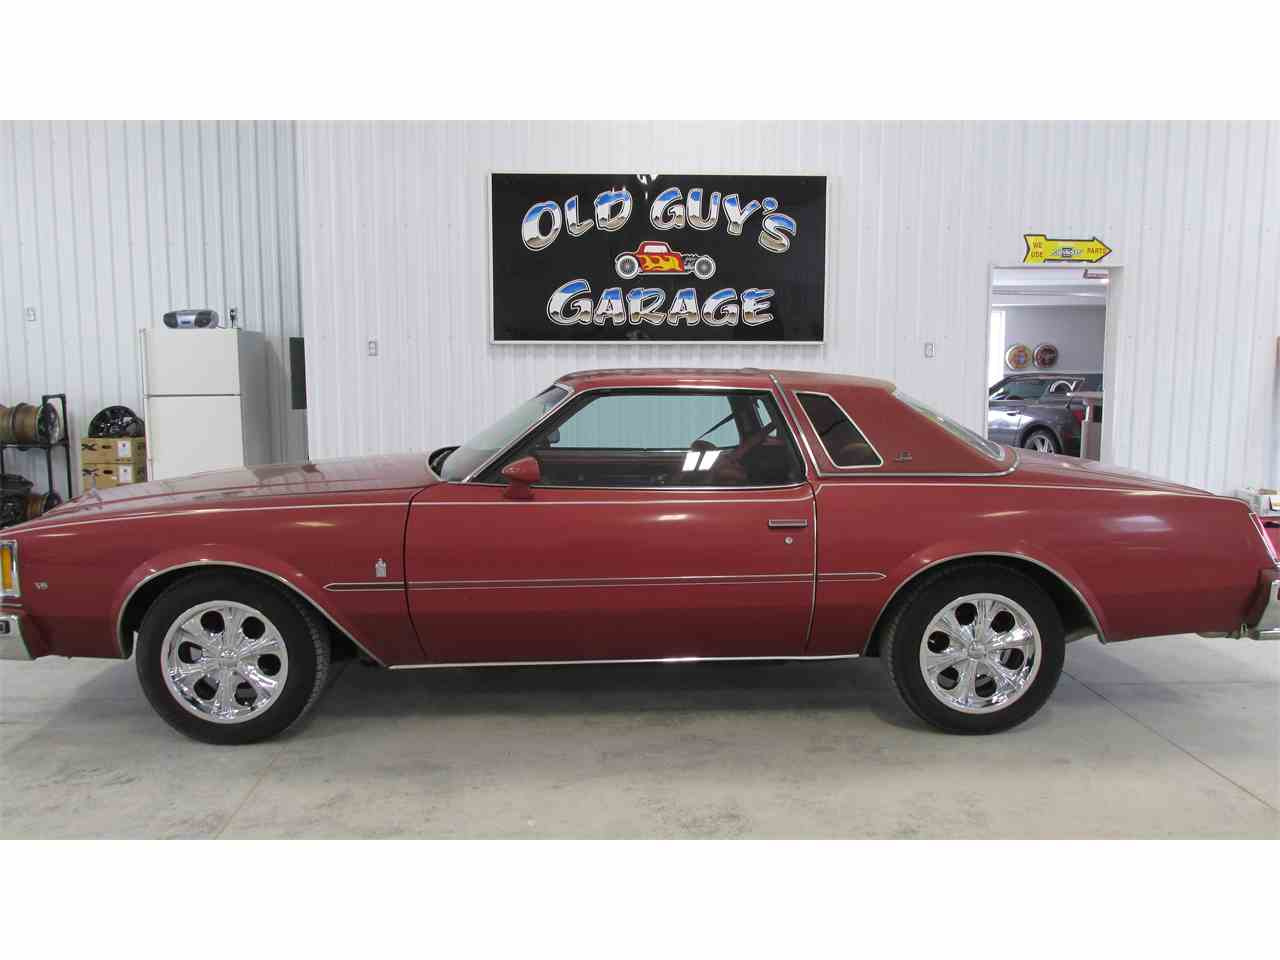 a classics landau year s curbside appearing final american classic is regal most cape buick introductory img the was for positioned century this colonnade as cod in coupe sale